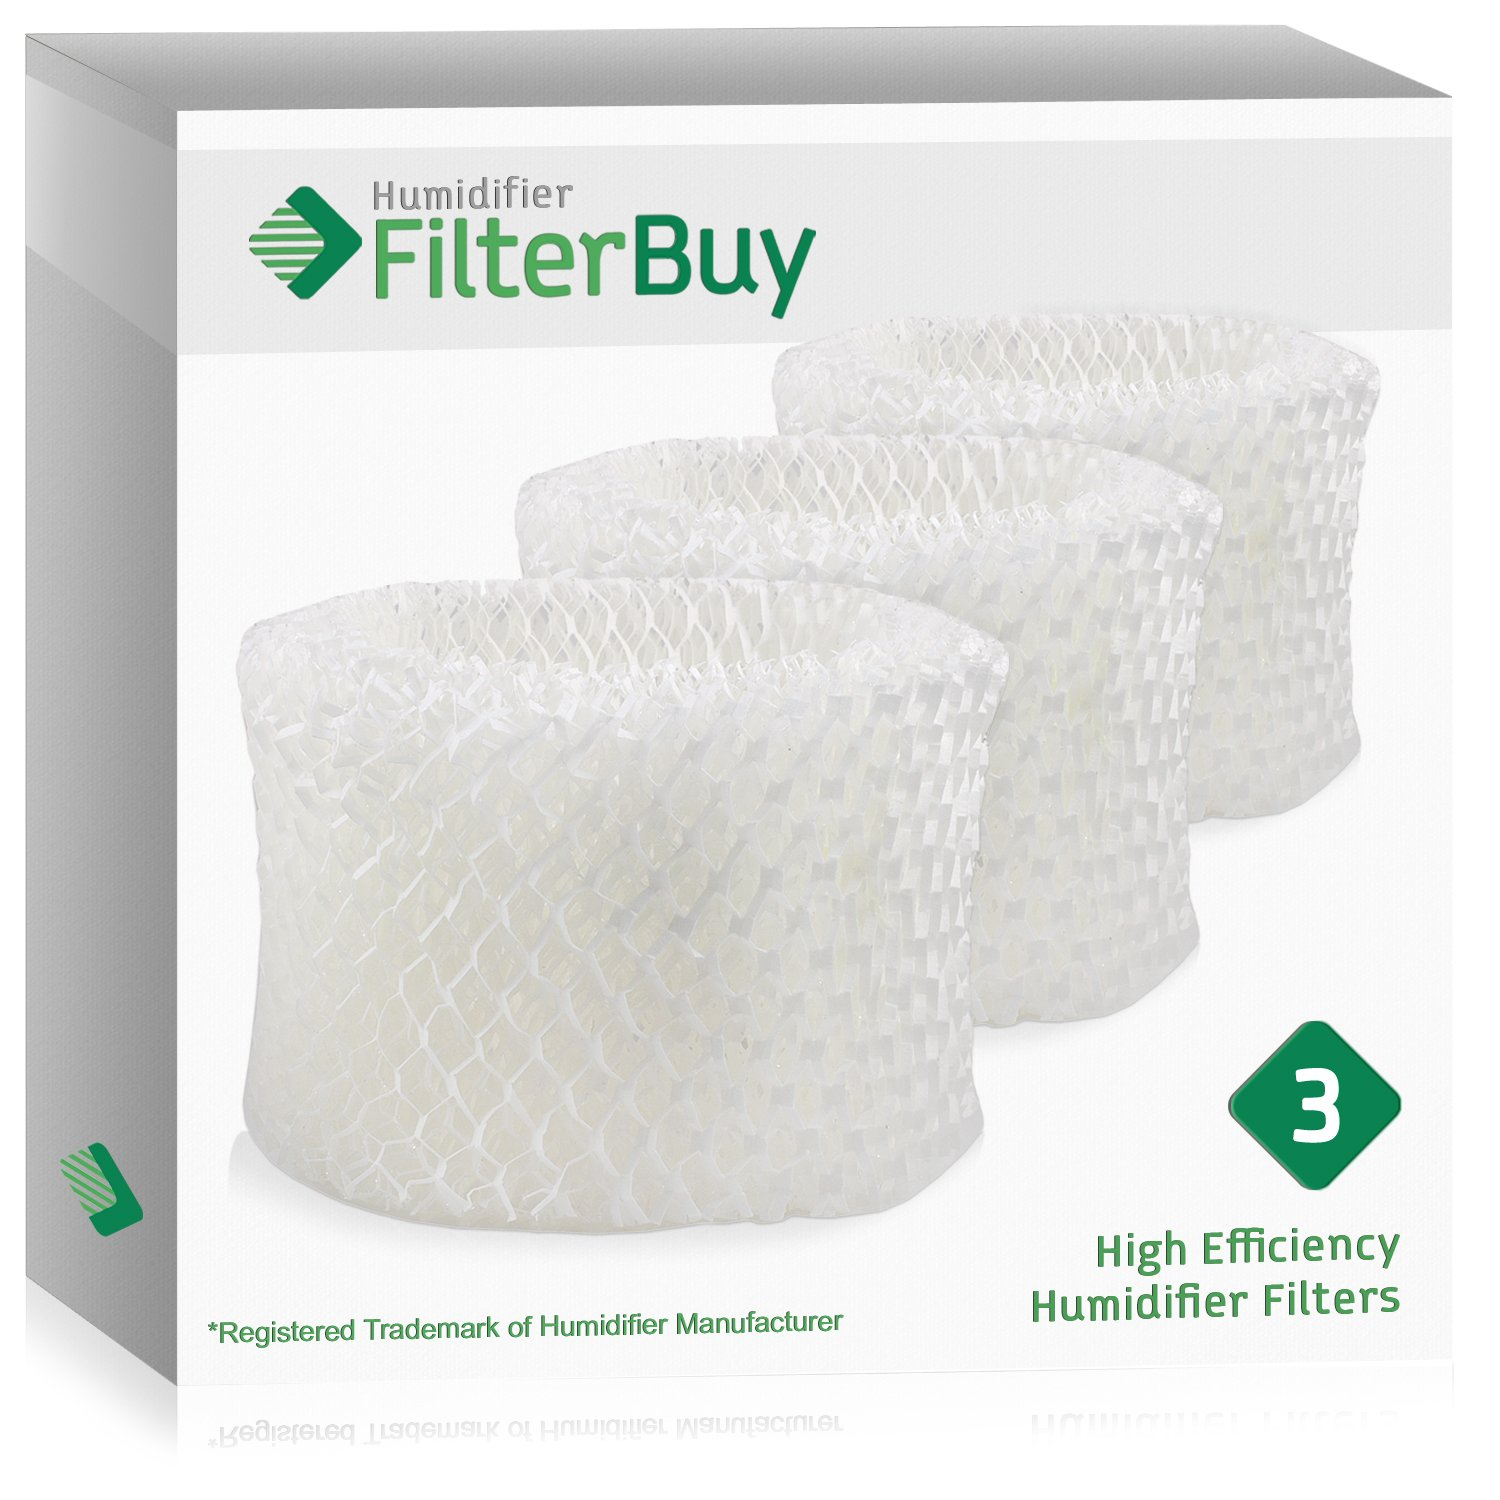 Amazon.com: FilterBuy Honeywell HAC-504AW Compatible Humidifier Filters  (Pack of 3). Designed by FilterBuy to fit Honeywell HCM-600, HCM-710, ...